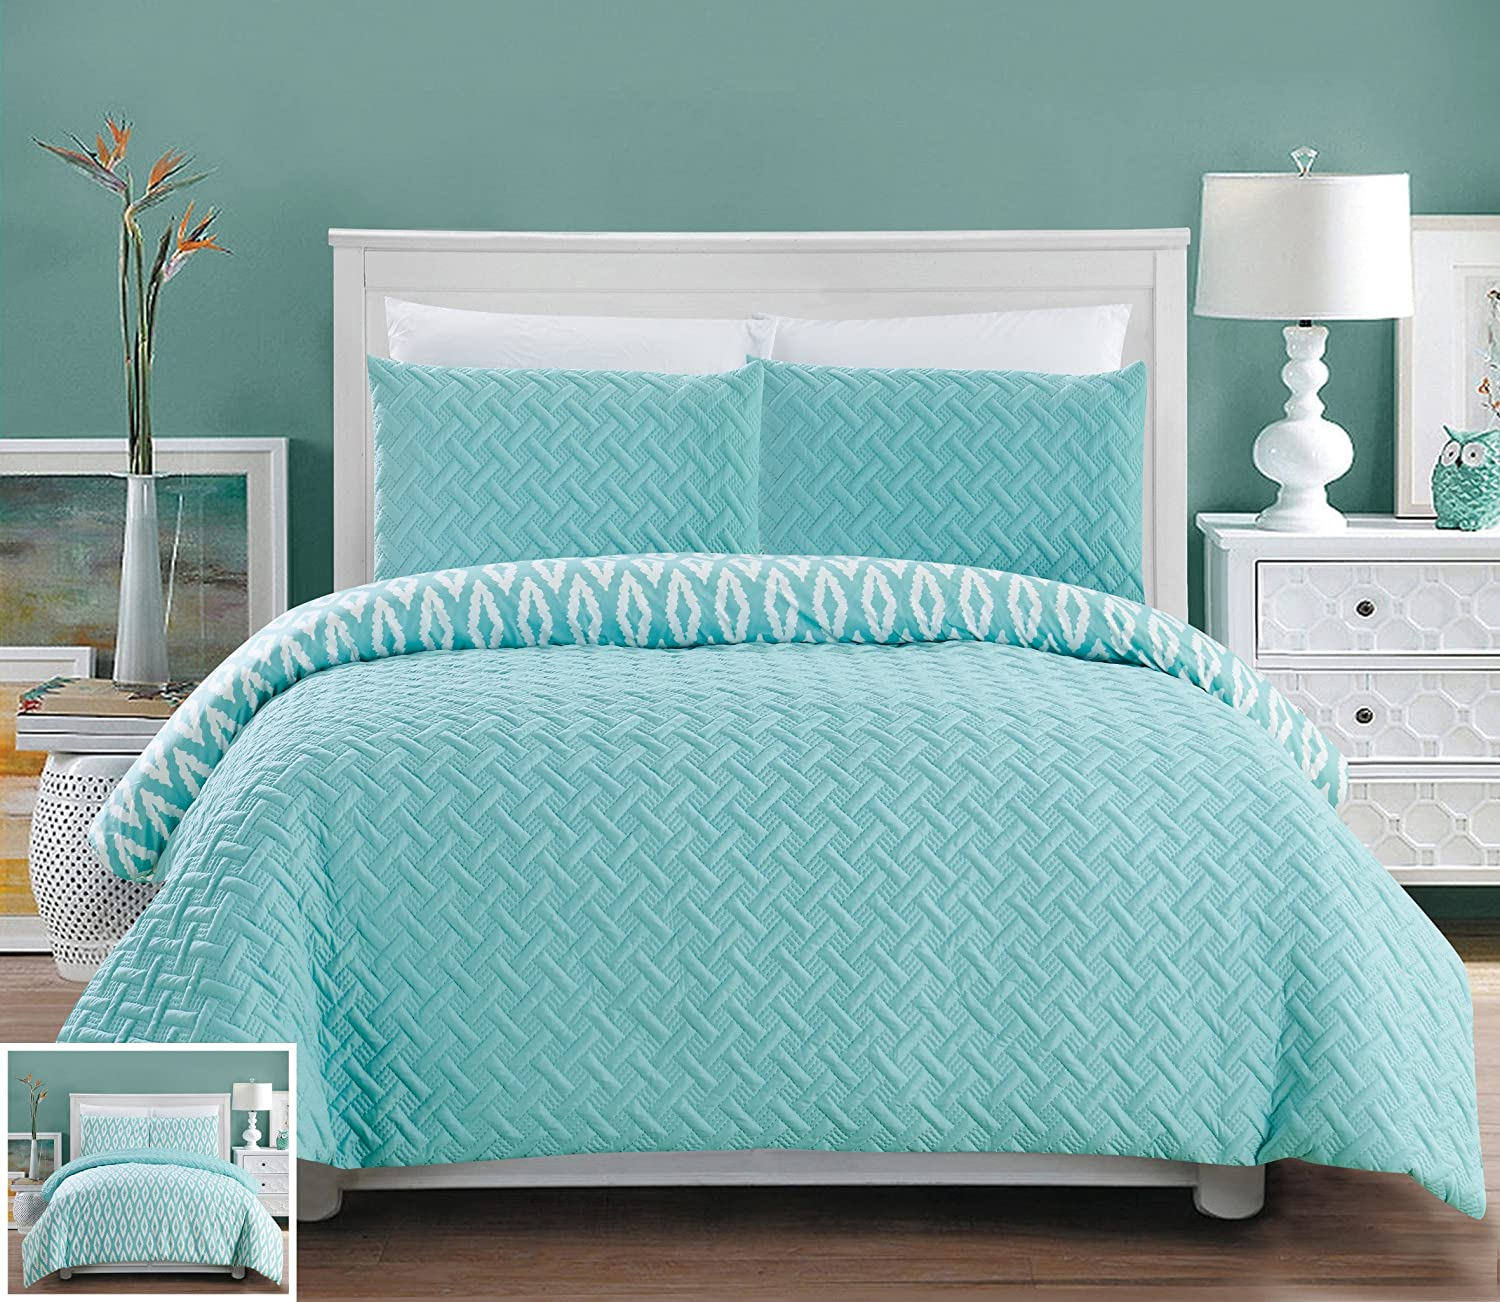 Chic Home 3 Piece Ora Heavy Embossed and Embroidered Quilted Geometrical Pattern Reversible Printed Queen Comforter Set Aqua